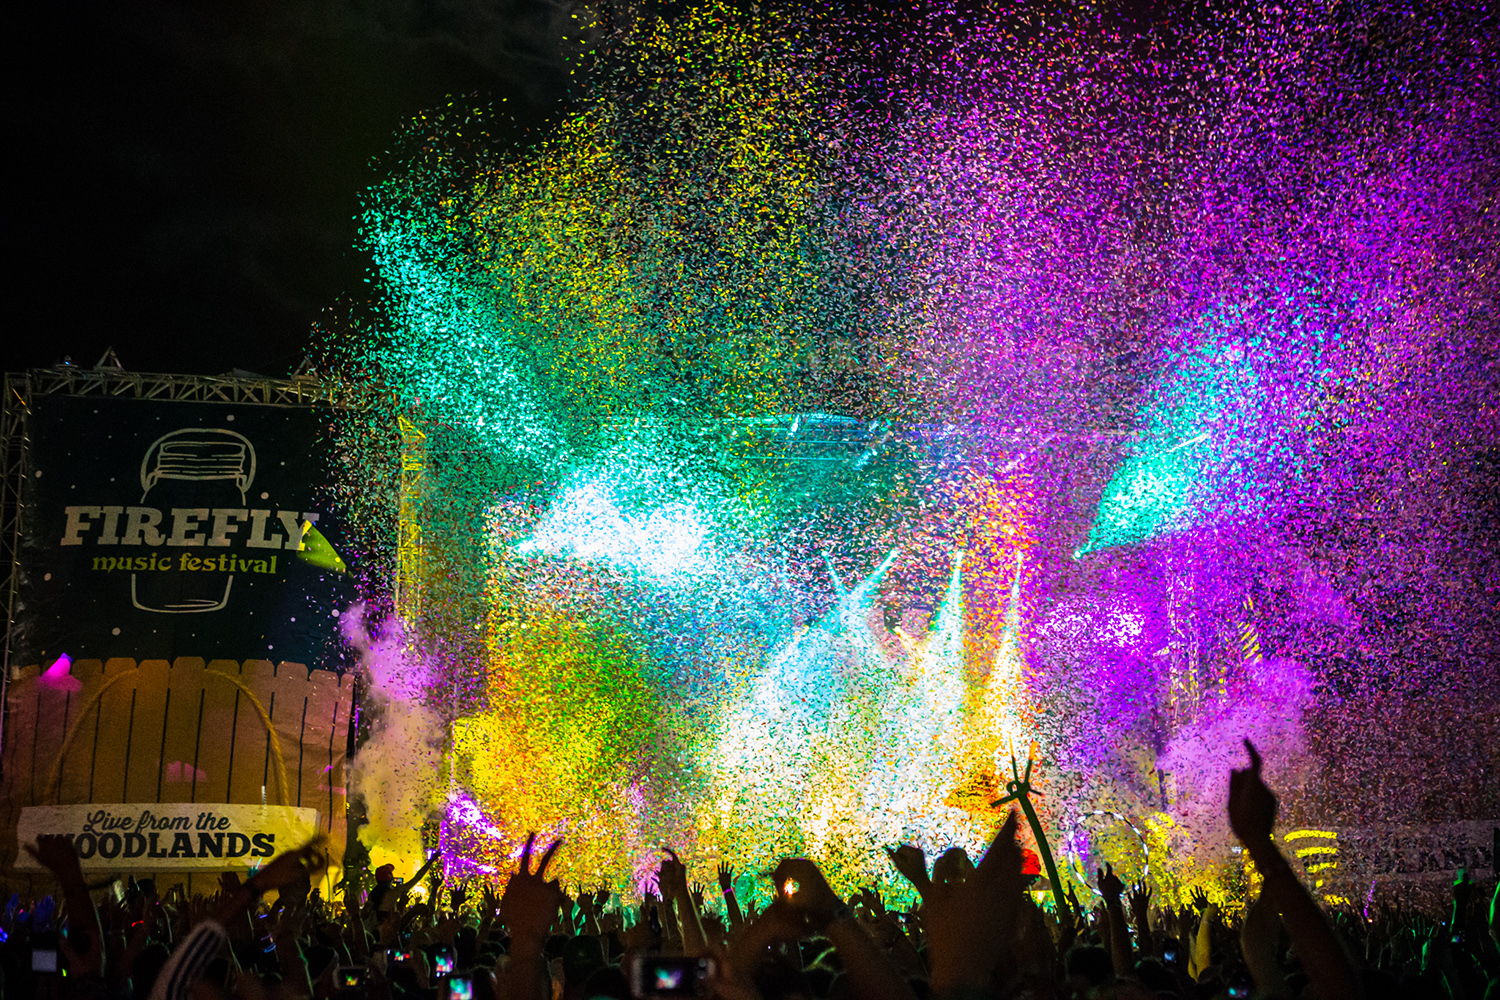 firefly_confetti_music_photographer.jpg